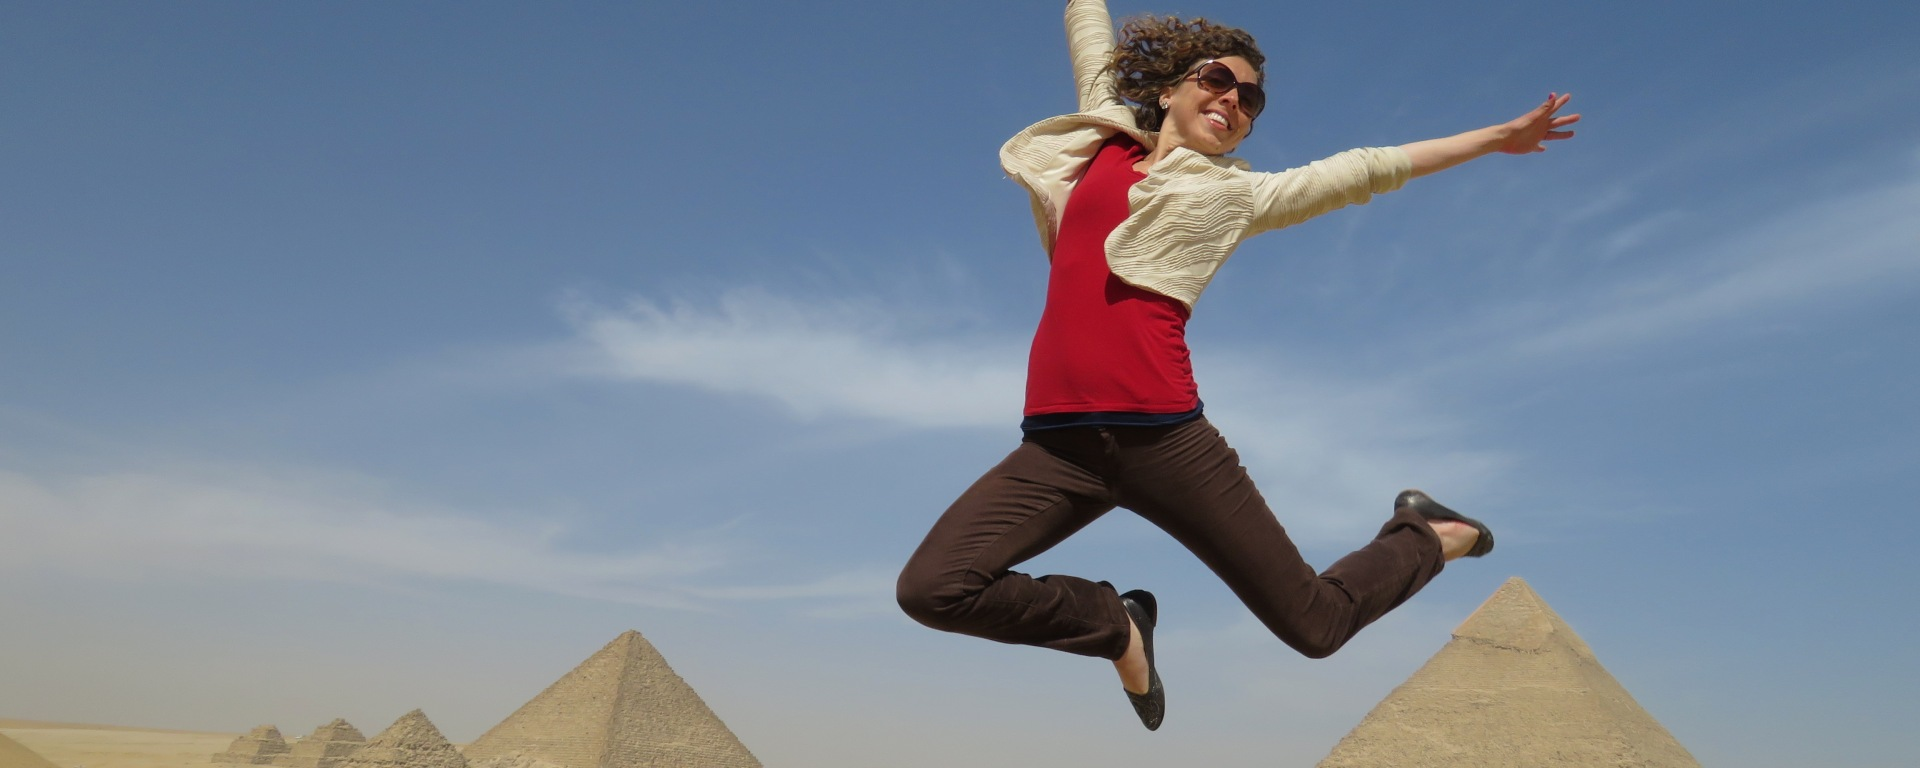 Anika Mikkelson - Jumping at the Pyramids of Giza, Egypt - www.MissMaps.com